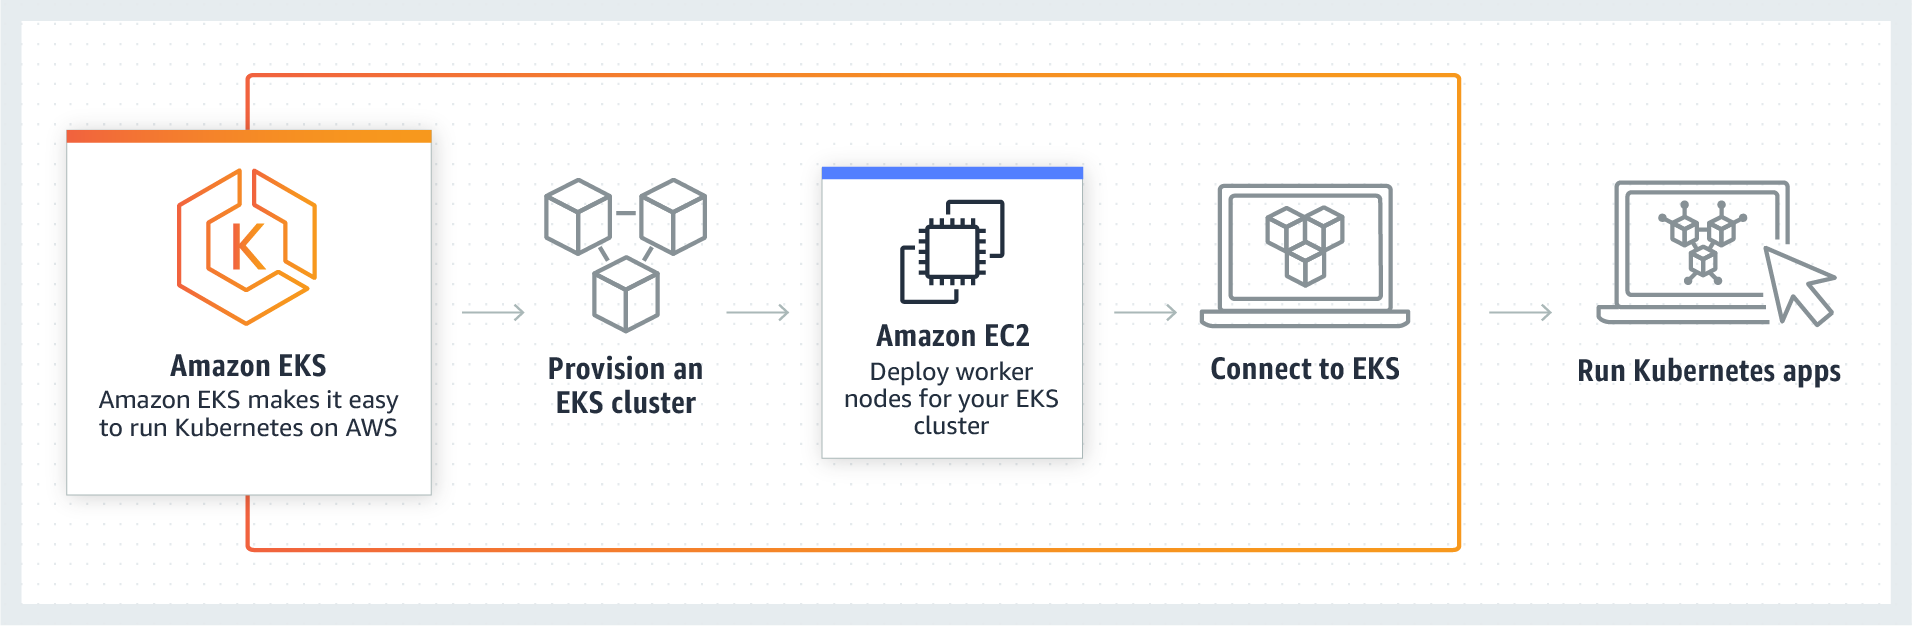 https://aws.amazon.com/ko/eks/